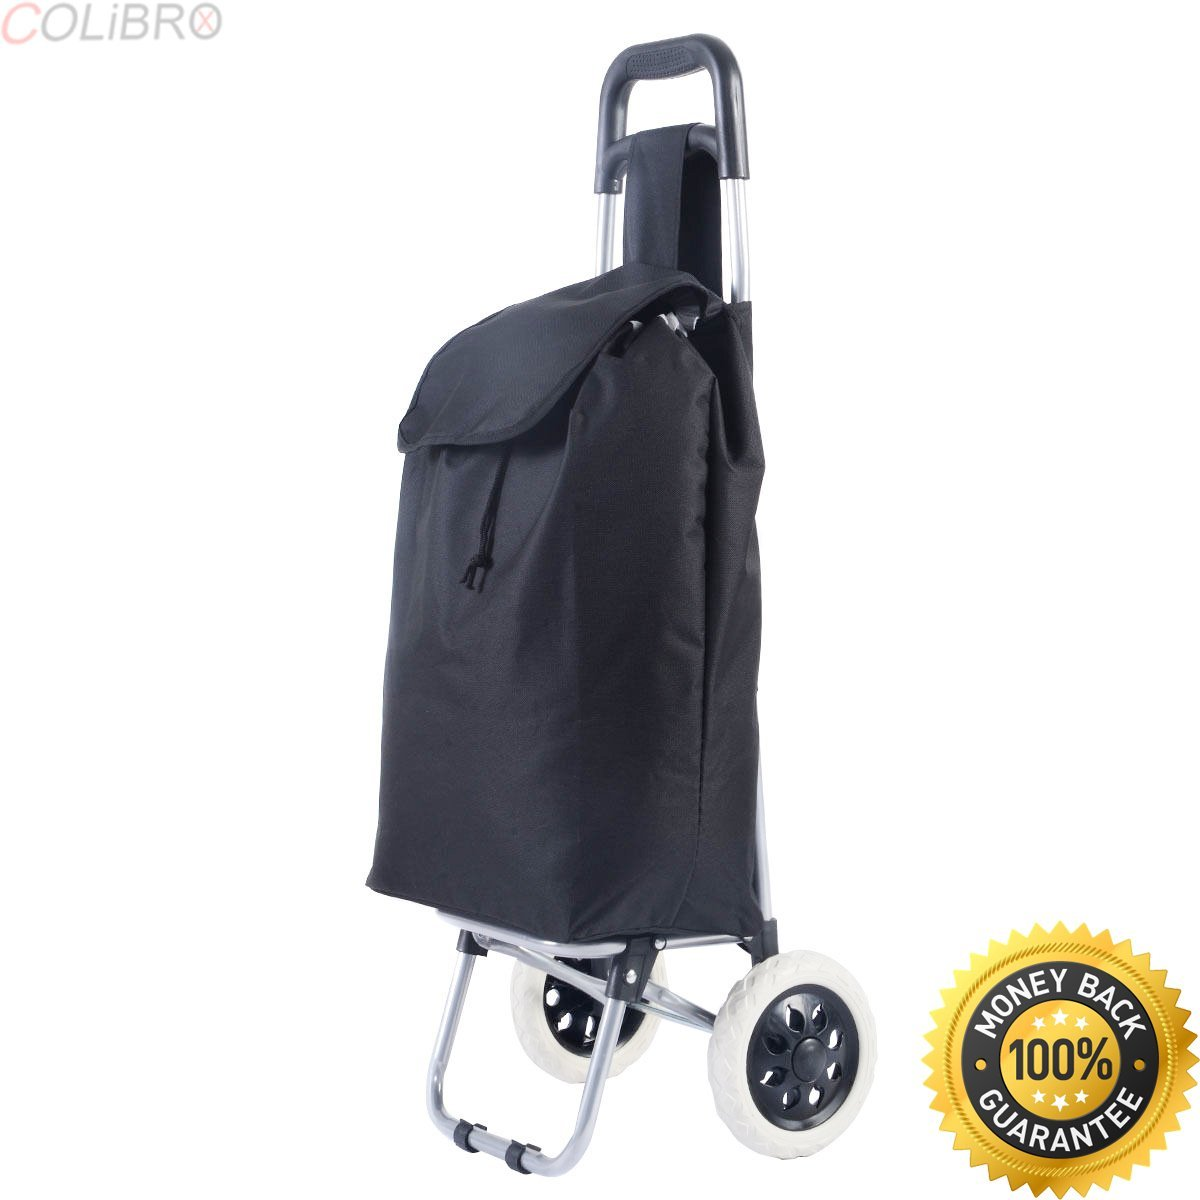 COLIBROX--Black Large Capacity Light Weight Wheeled Shopping Trolley Push Cart Bag New. best golf bag for push cart 2017. ogio cirrus stand bag. bag boy push cart.clicgear parts. golf clubs for sale.